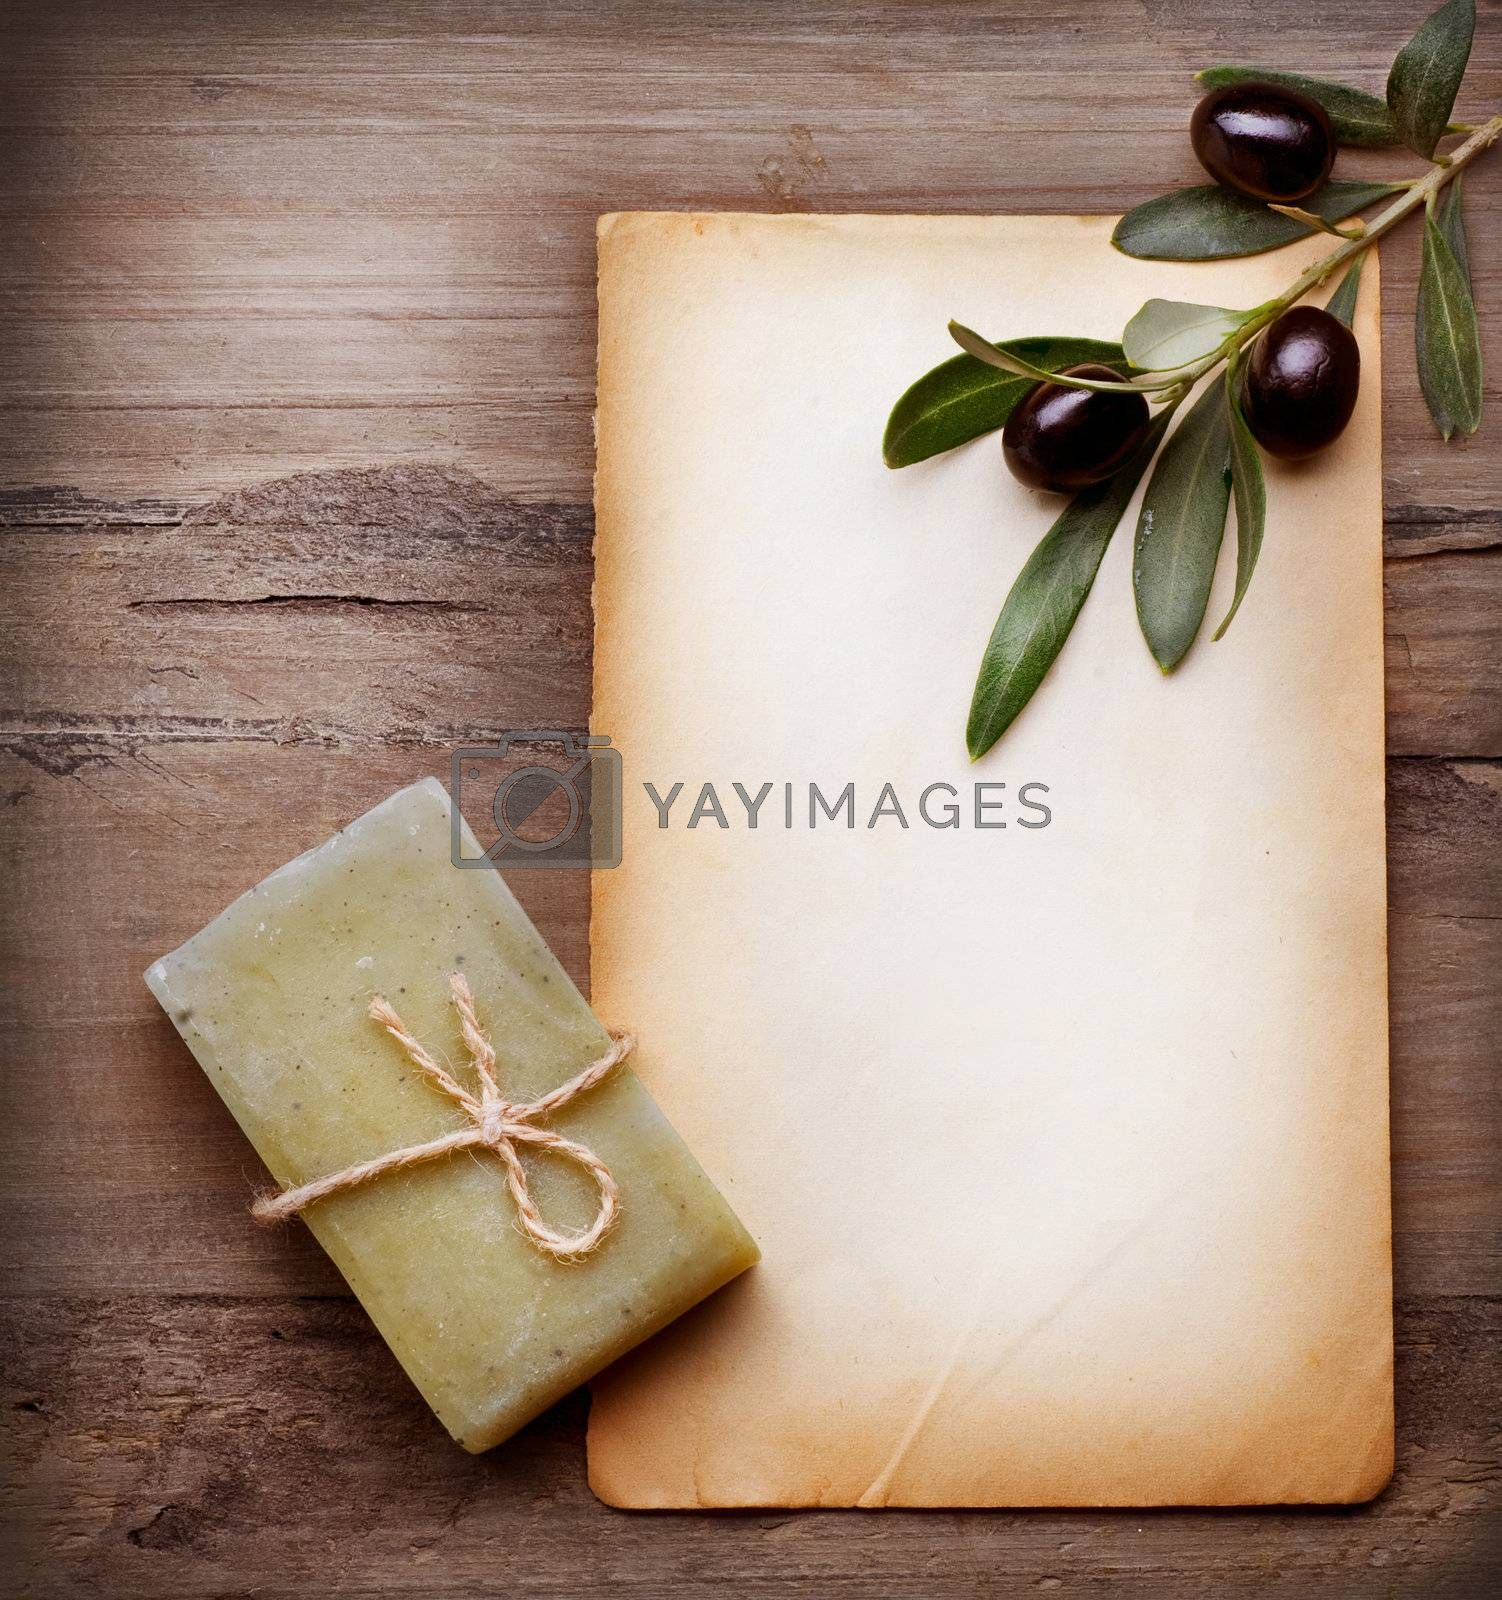 Handmade Olive Soap and Blank Paper with Olive Branch over Woode by Subbotina Anna